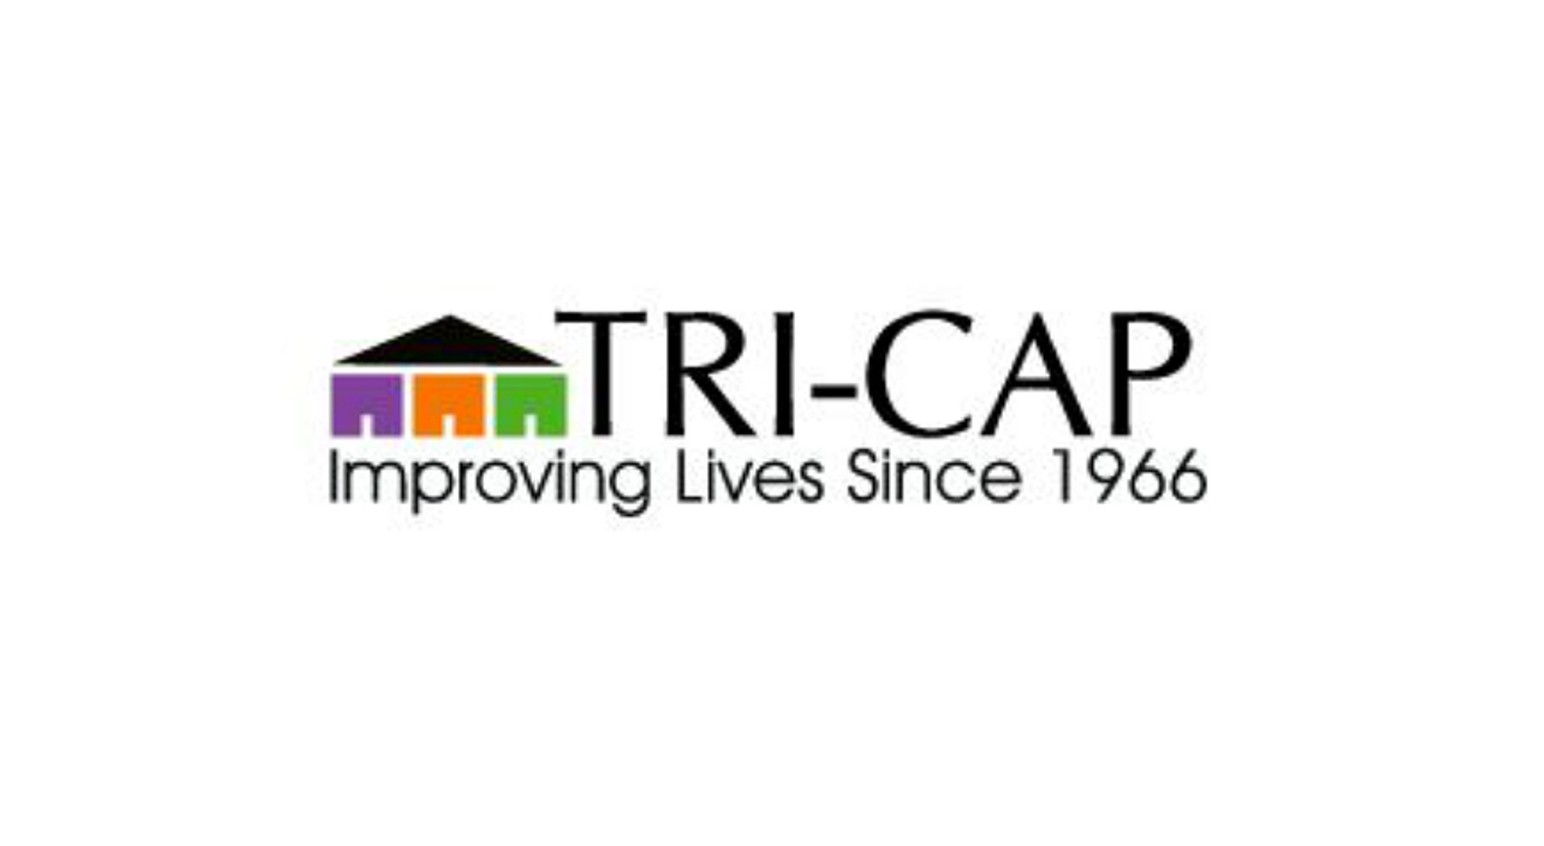 TRI-CAP Offers Free Help Signing Up For Health Insurance During Open Enrollment